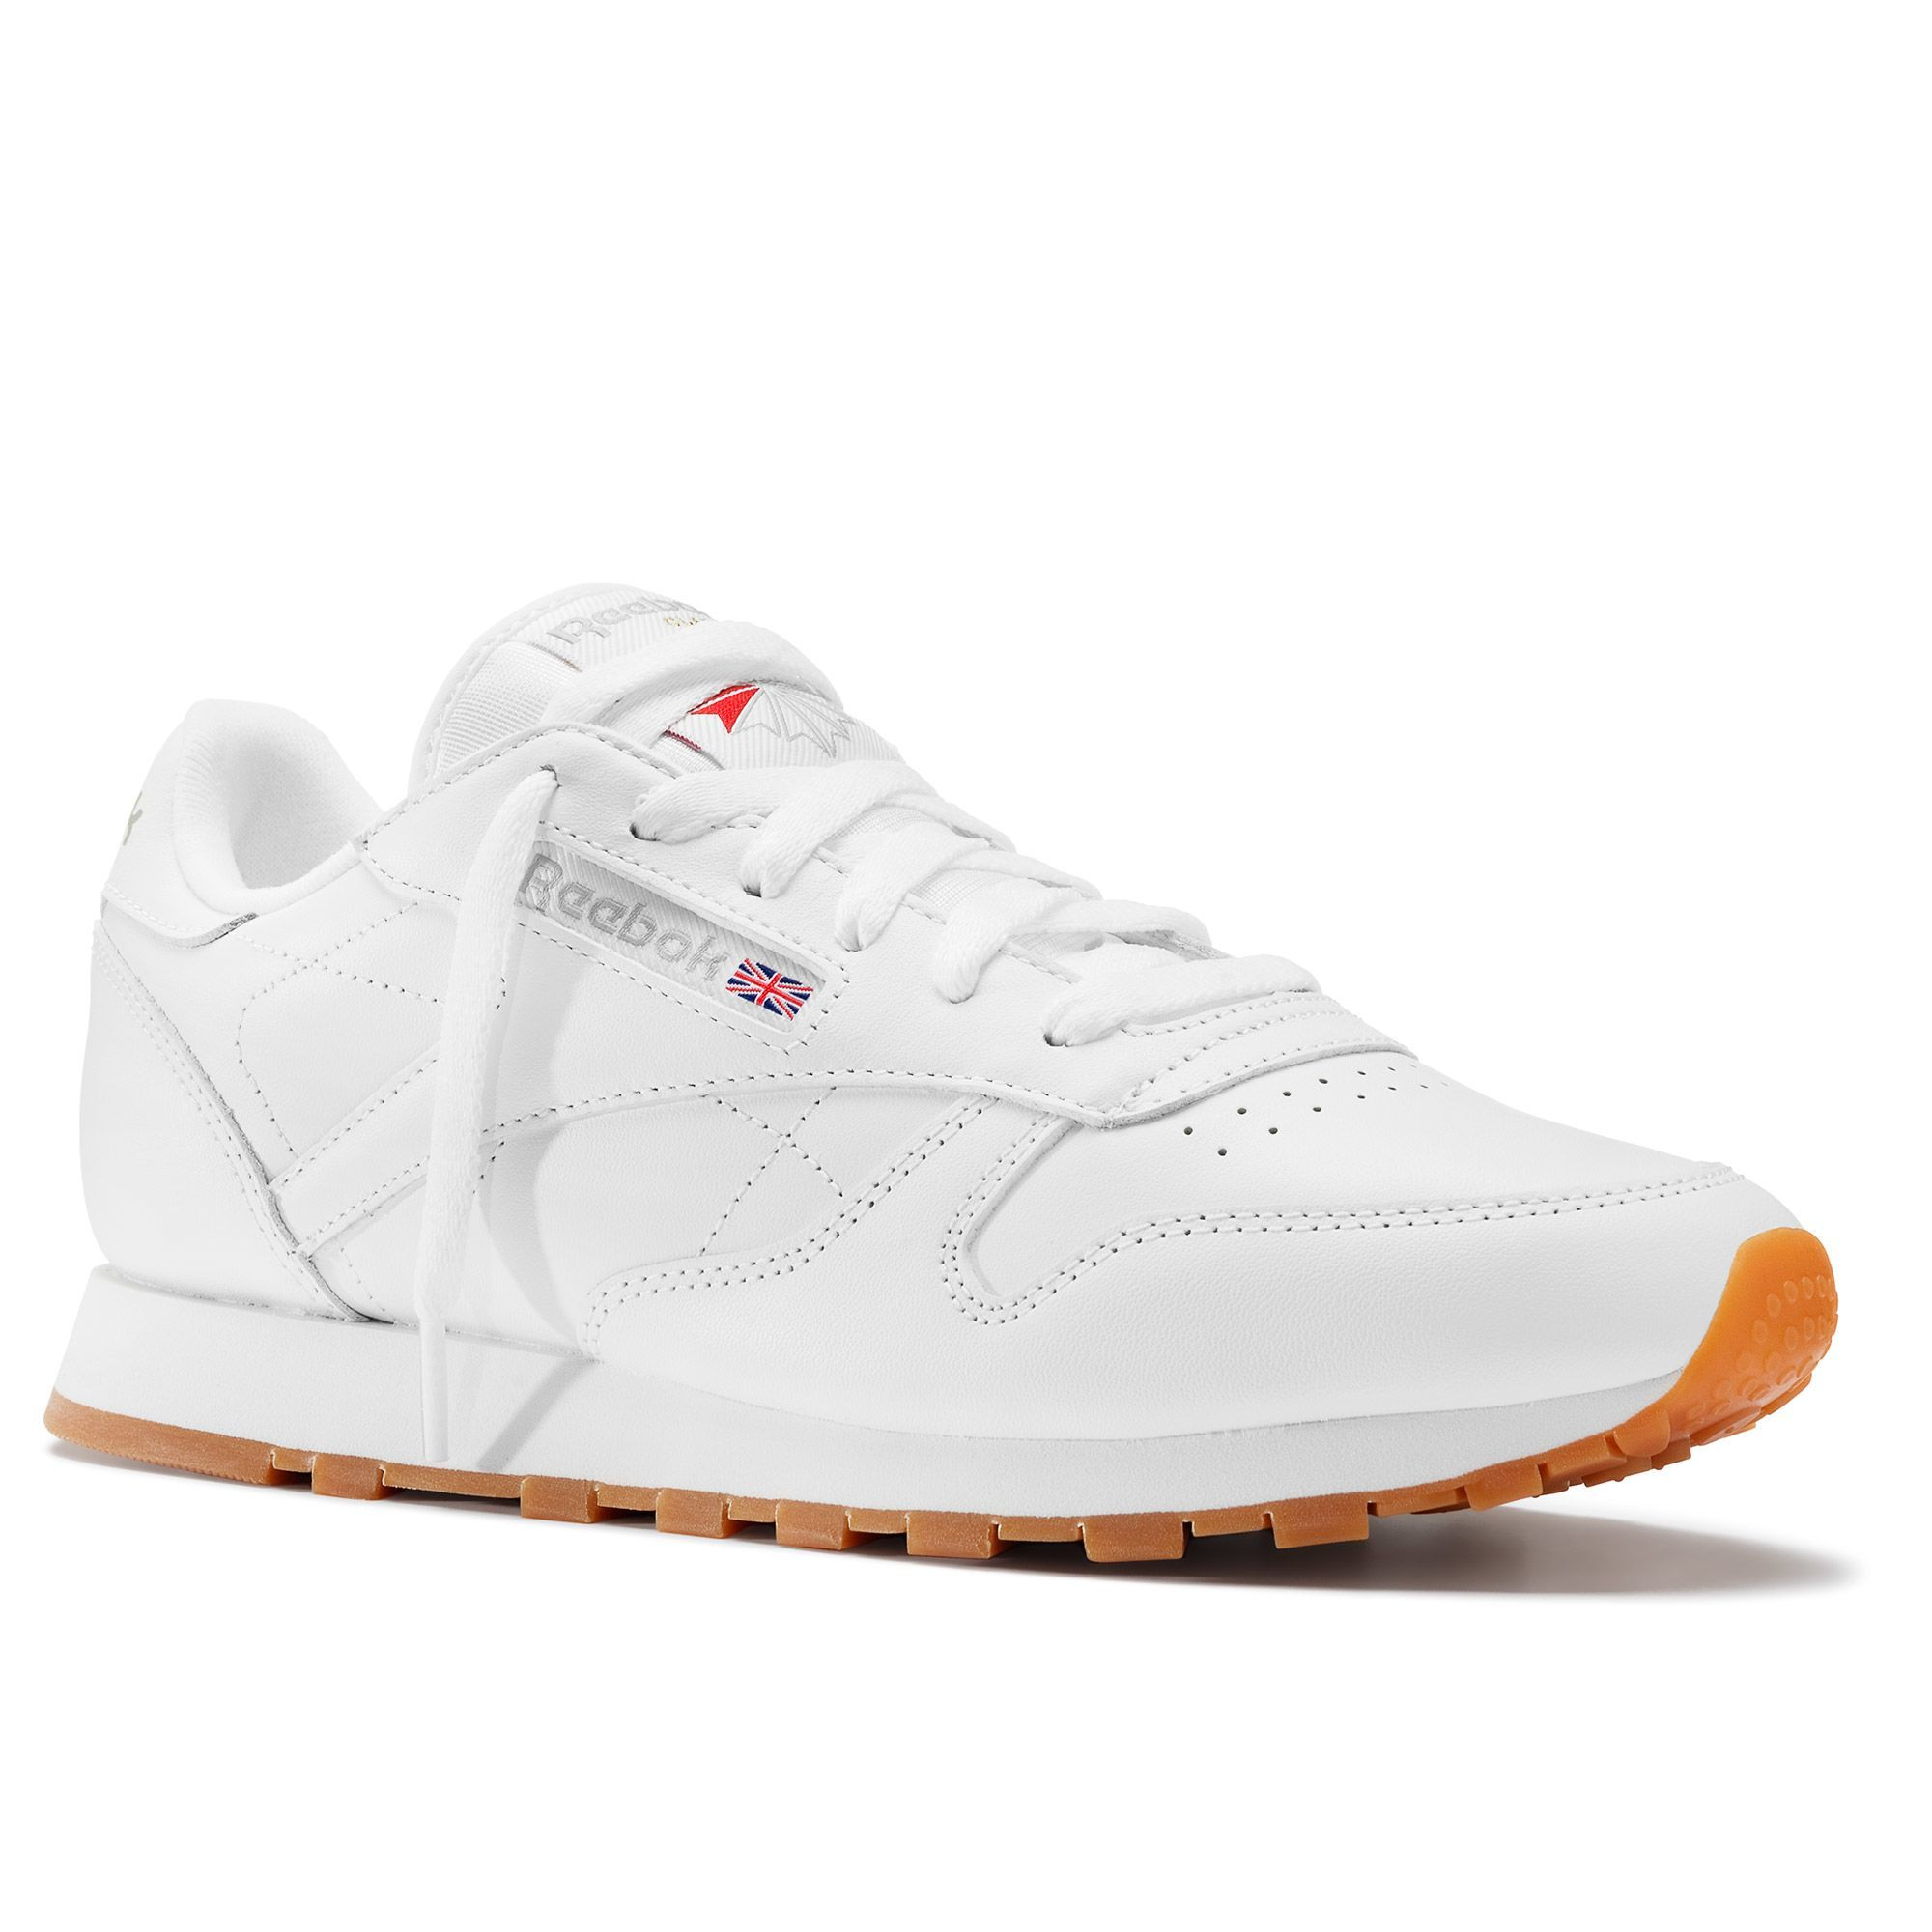 5361d54ac0ef7 Reebok Classic Leather - White